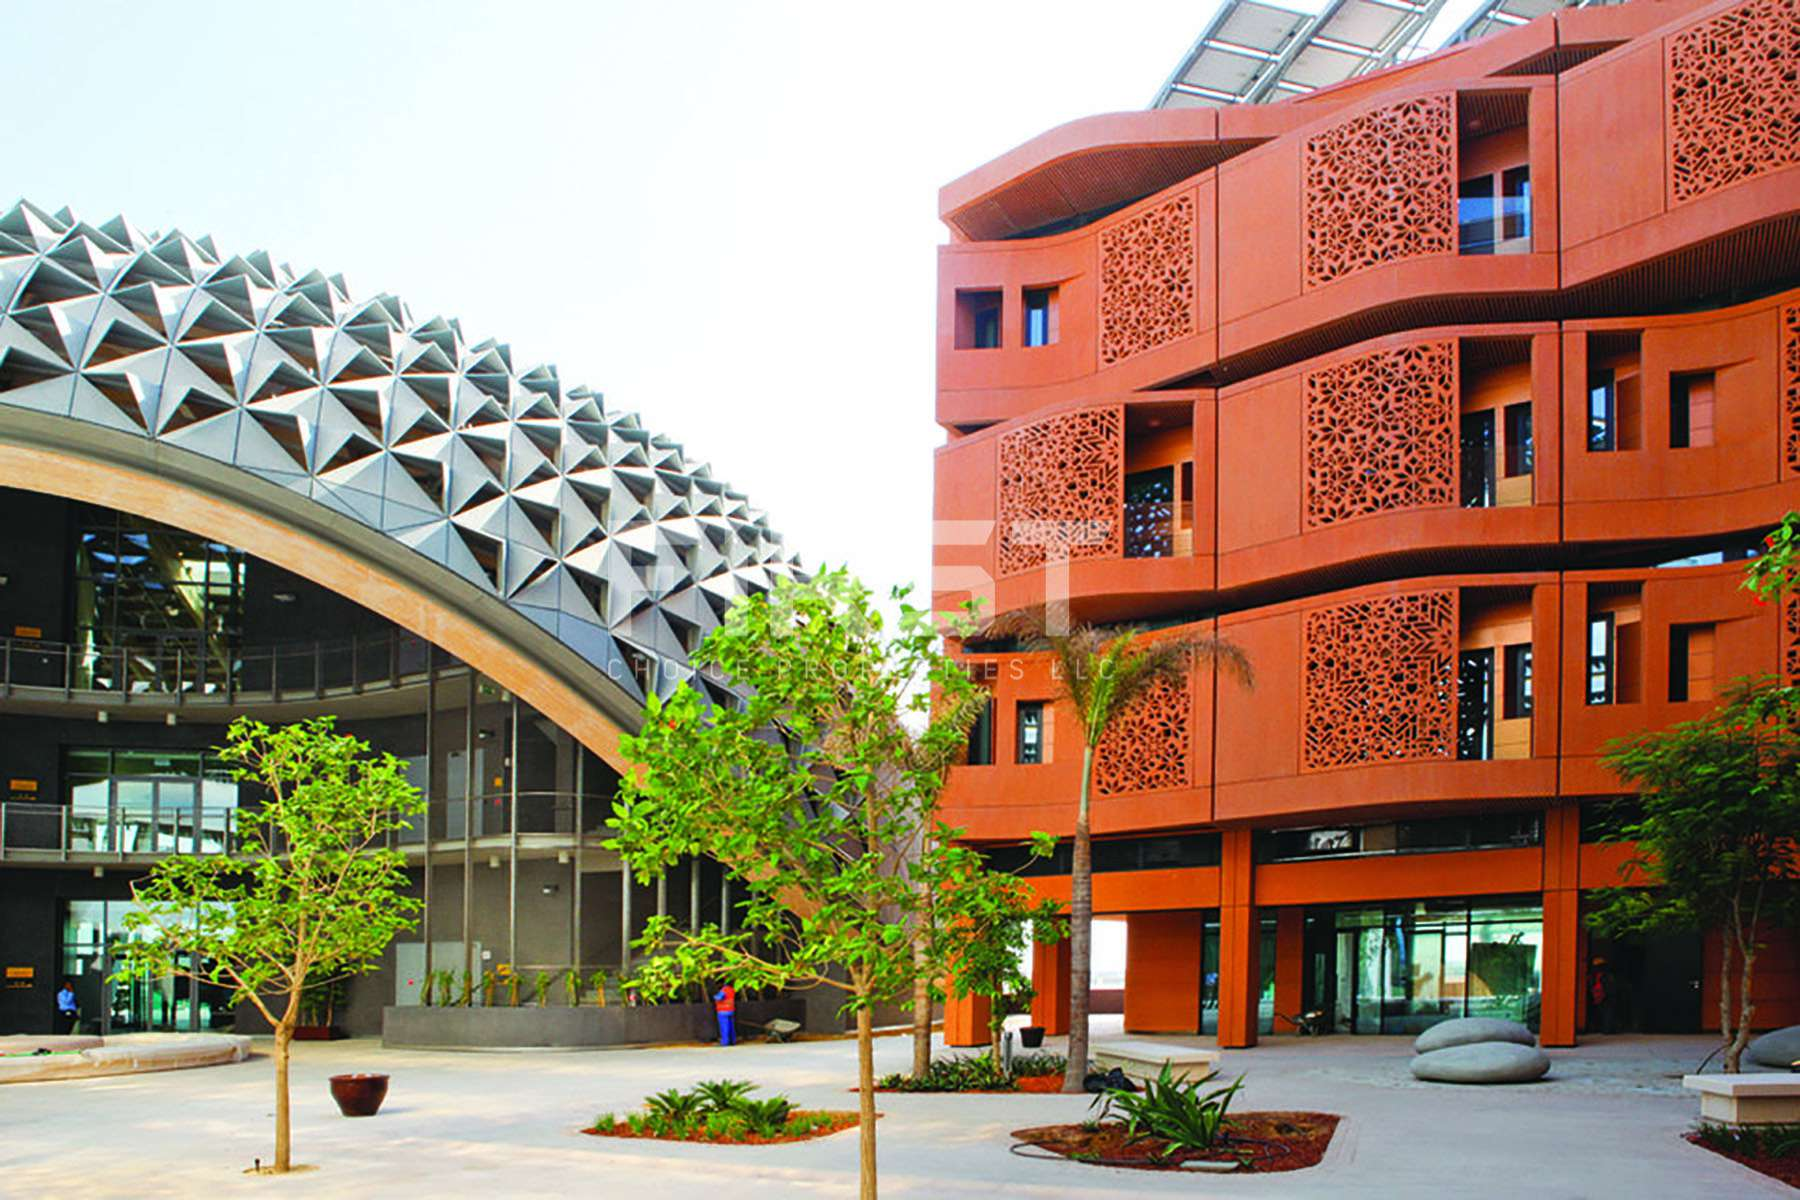 Oasis Residences 2 in Masdar City, Abu Dhabi -UAE (15).jpg